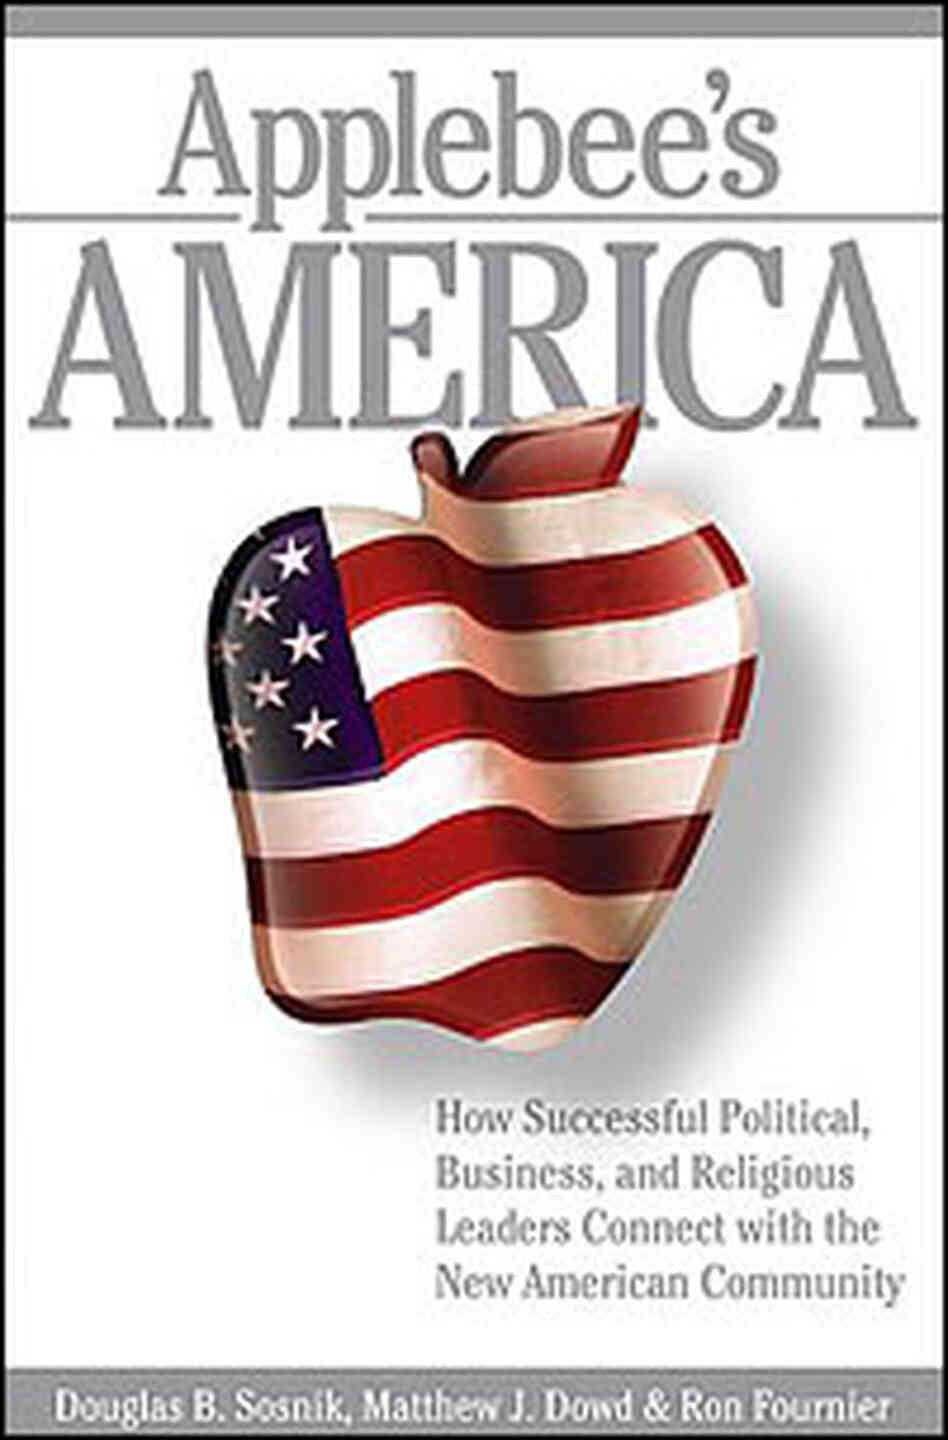 'Applebee's America'  book cover